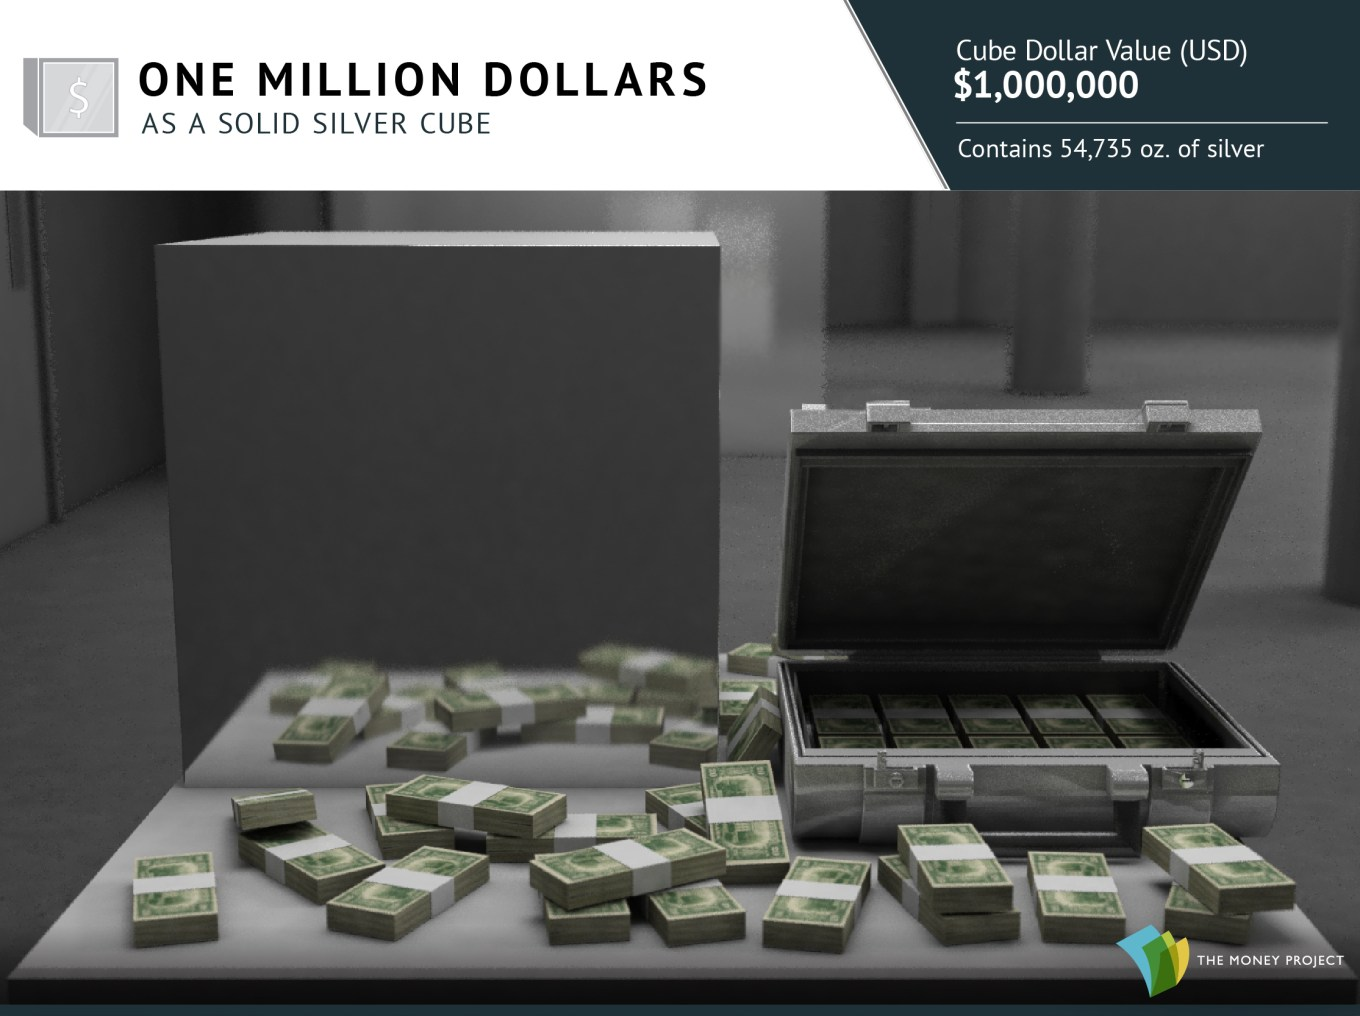 $1 million as a silver cube